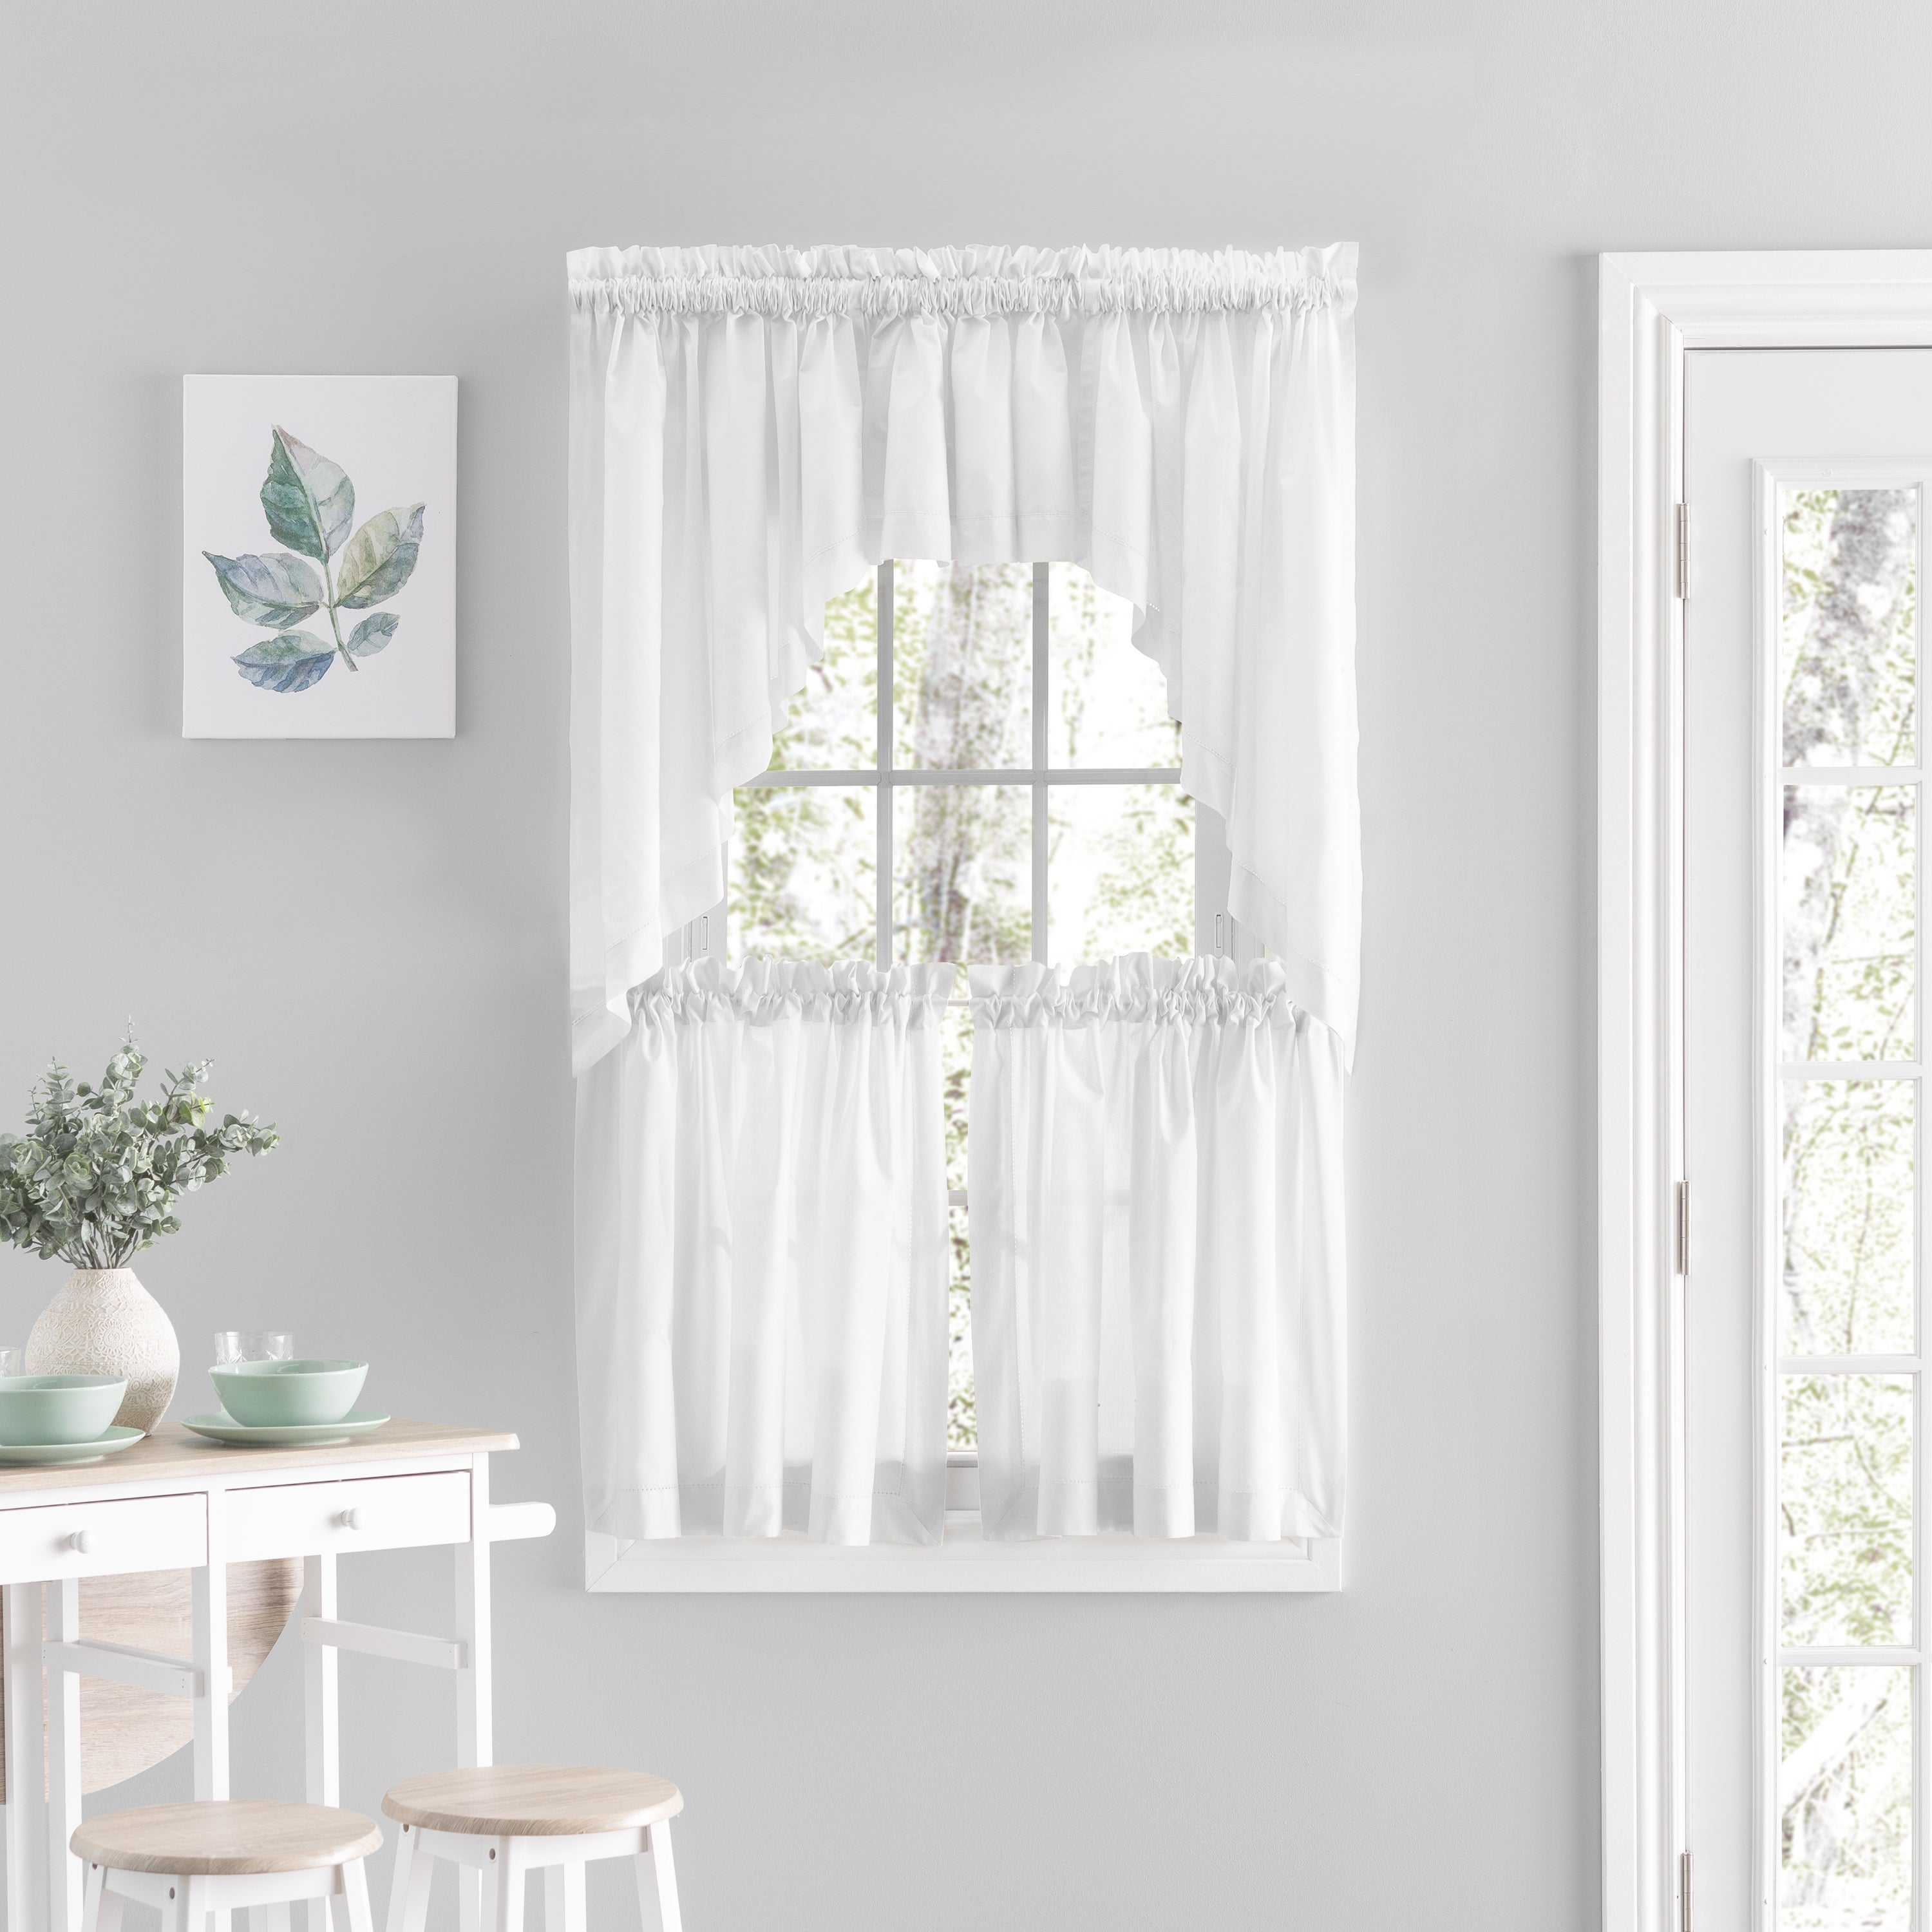 Simplicity Rod Pocket Kitchen Curtains Tier Swag Or Valance Sold Separately Overstock 31826739